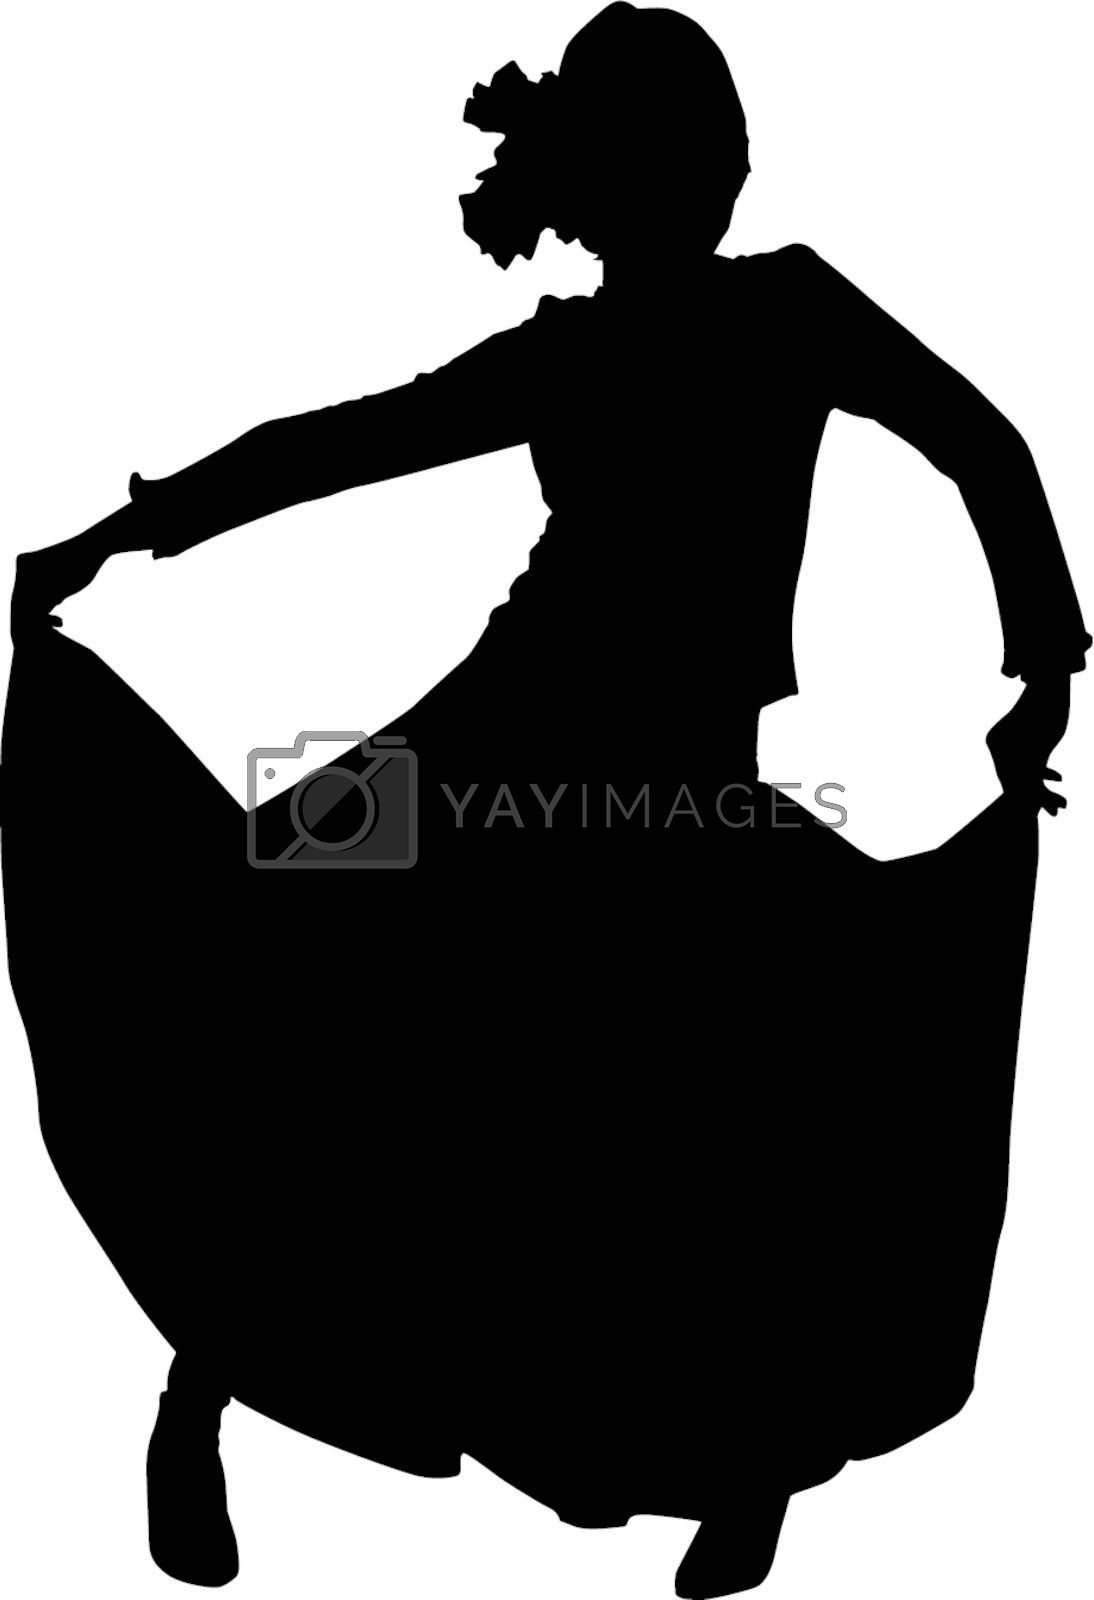 Royalty free image of Silhouette dancer woman by sattva